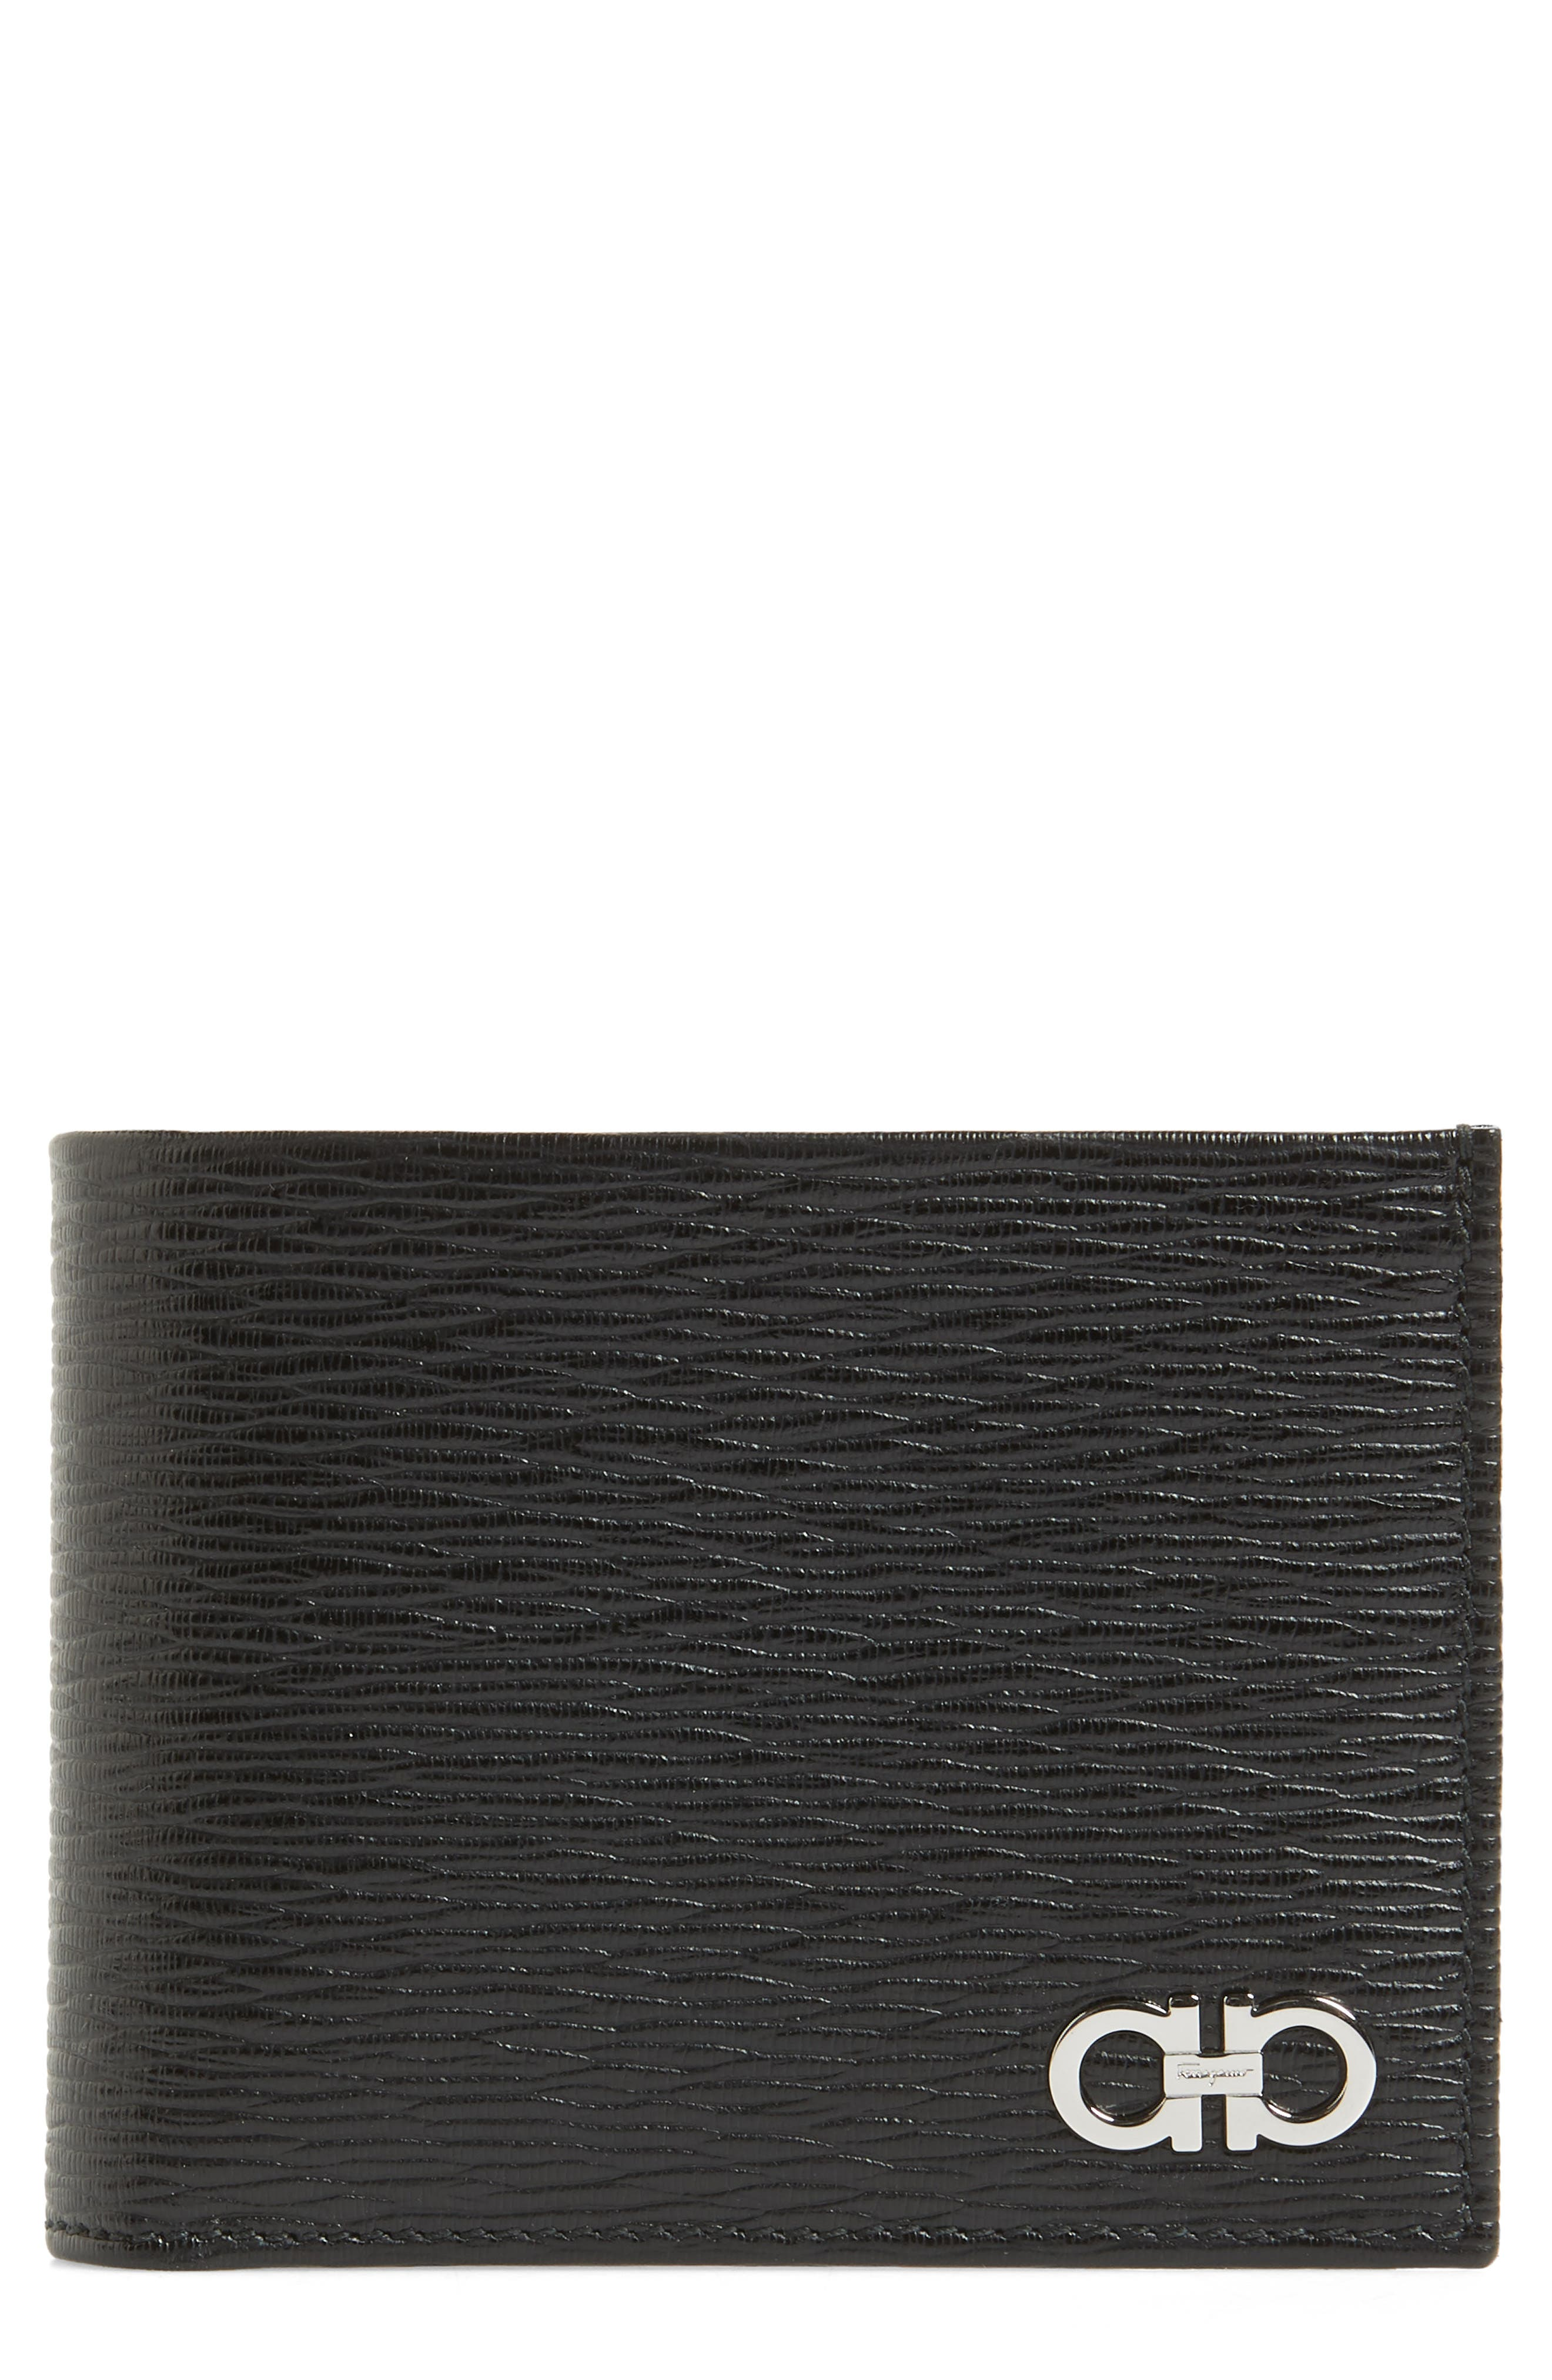 Revival Leather Card Case by Salvatore Ferragamo